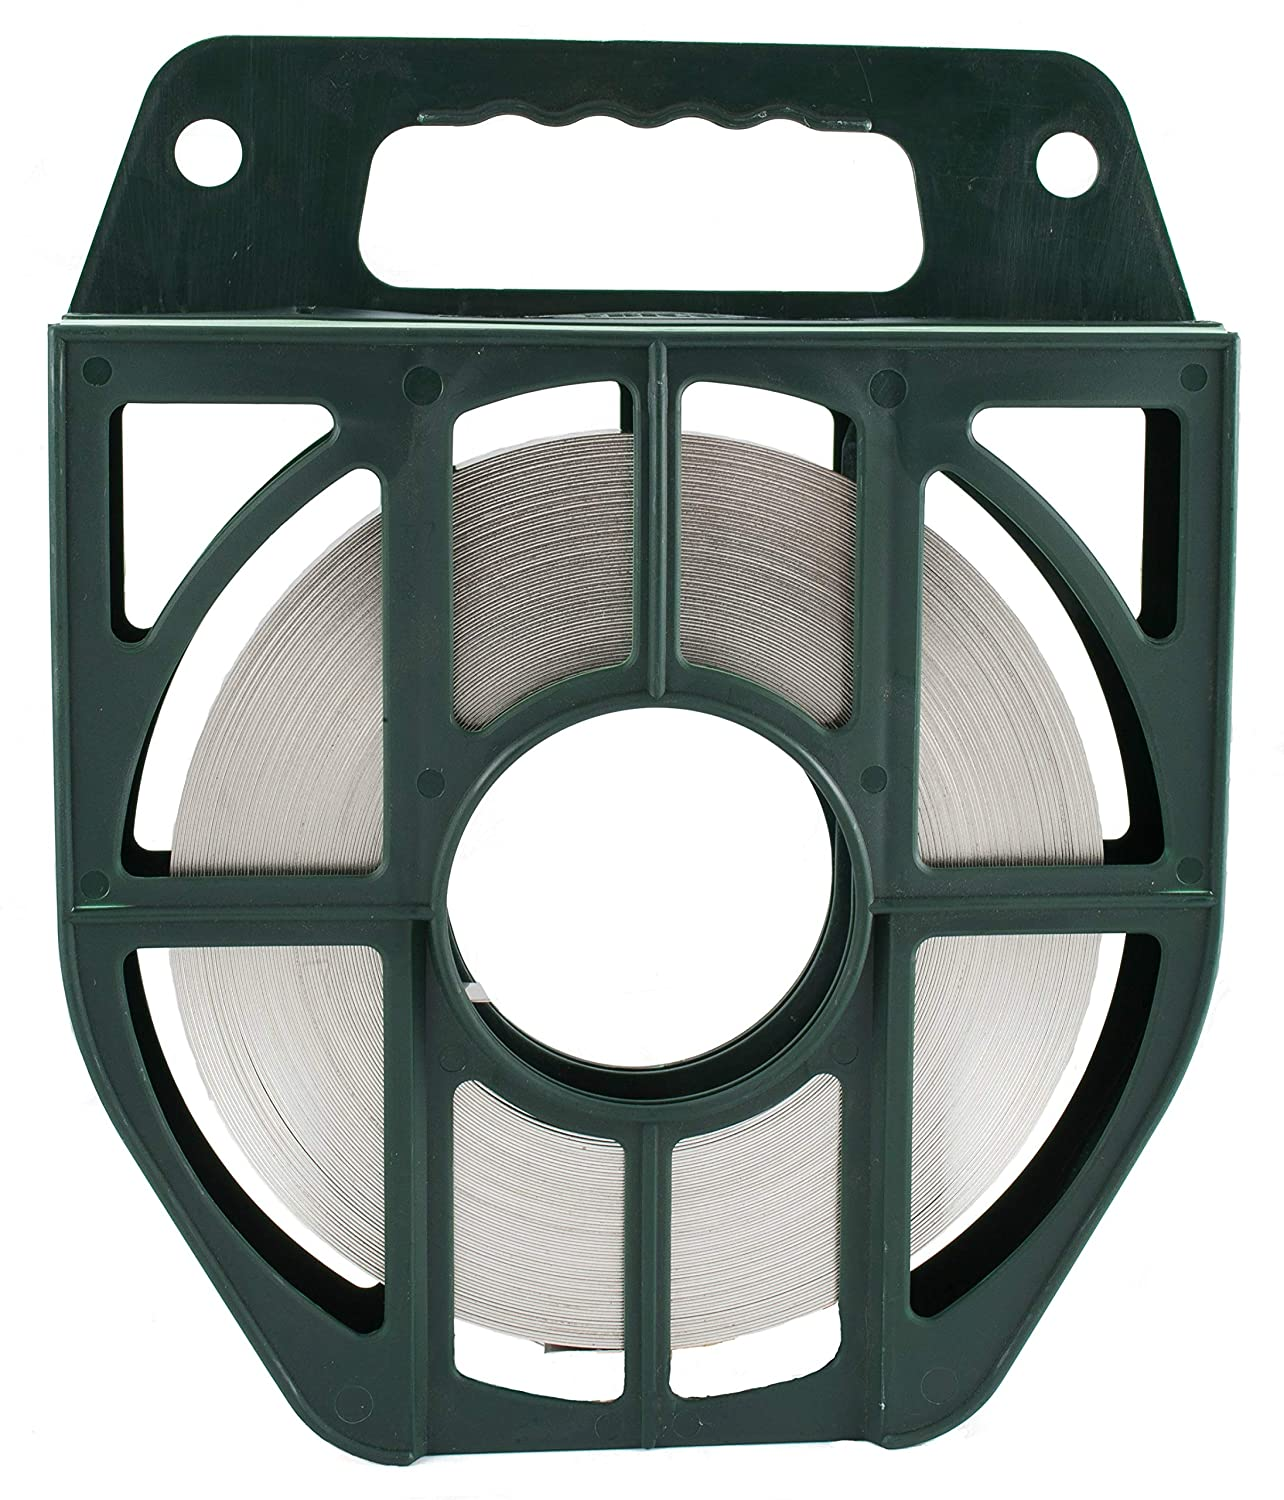 ISO BA404T-50 Type 316 Stainless Steel Band 1/2